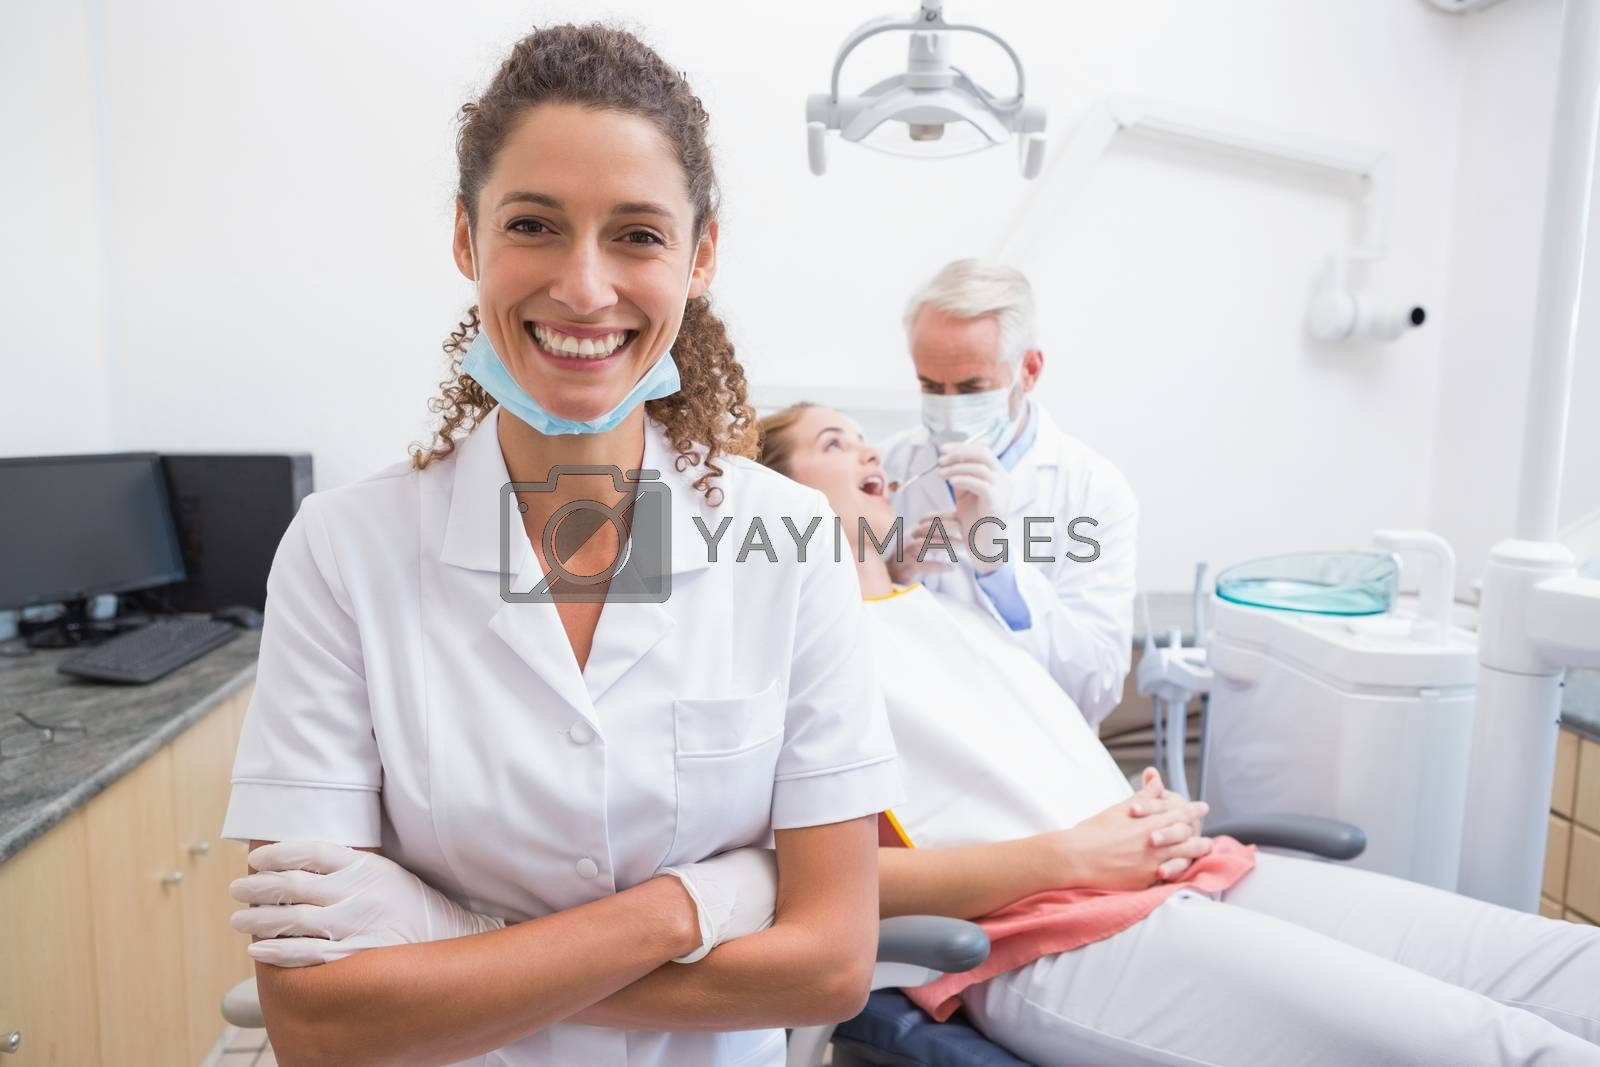 Dental assistant smiling at camera with dentist and patient behind at the dental clinic